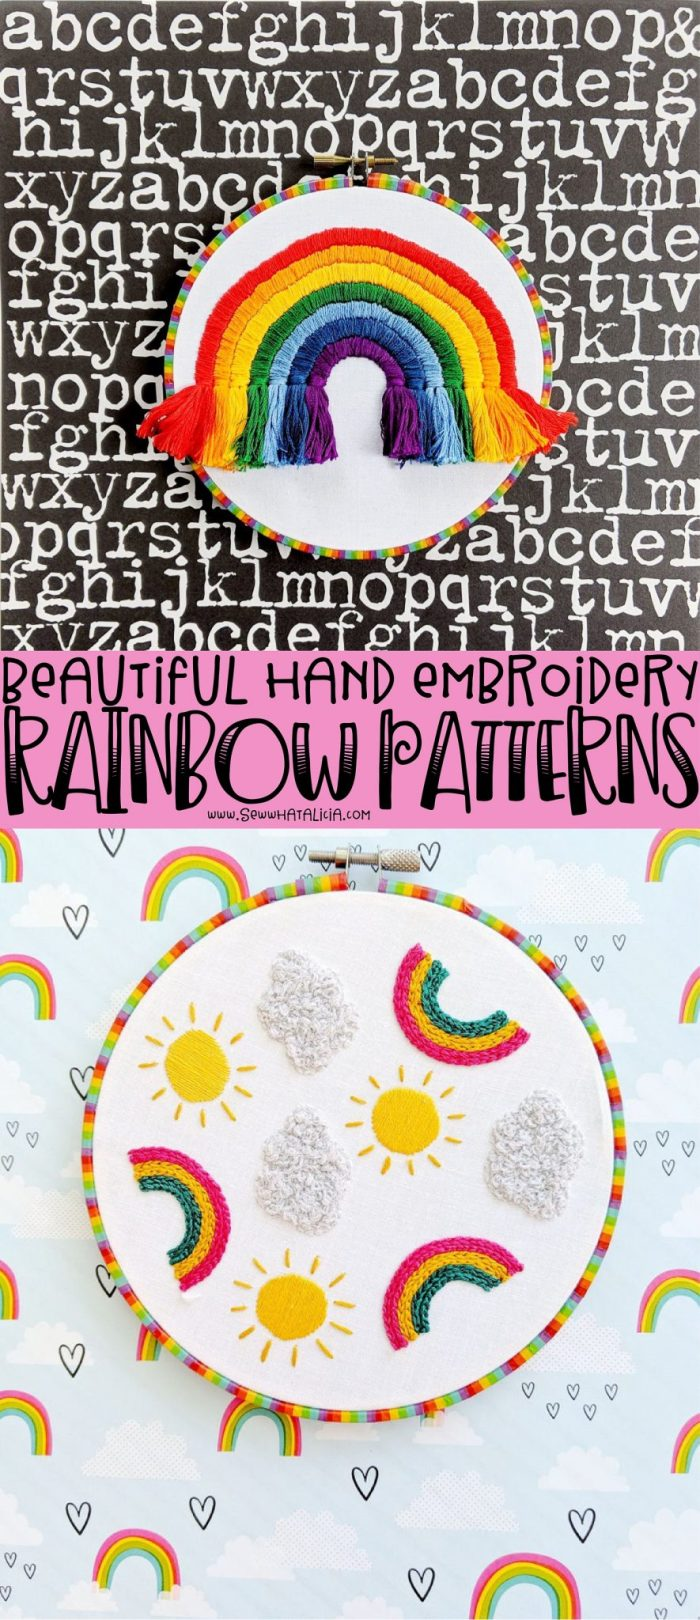 pictured rainbow hand embroidery hoops with words that say beautiful hand embroidery rainbow patterns